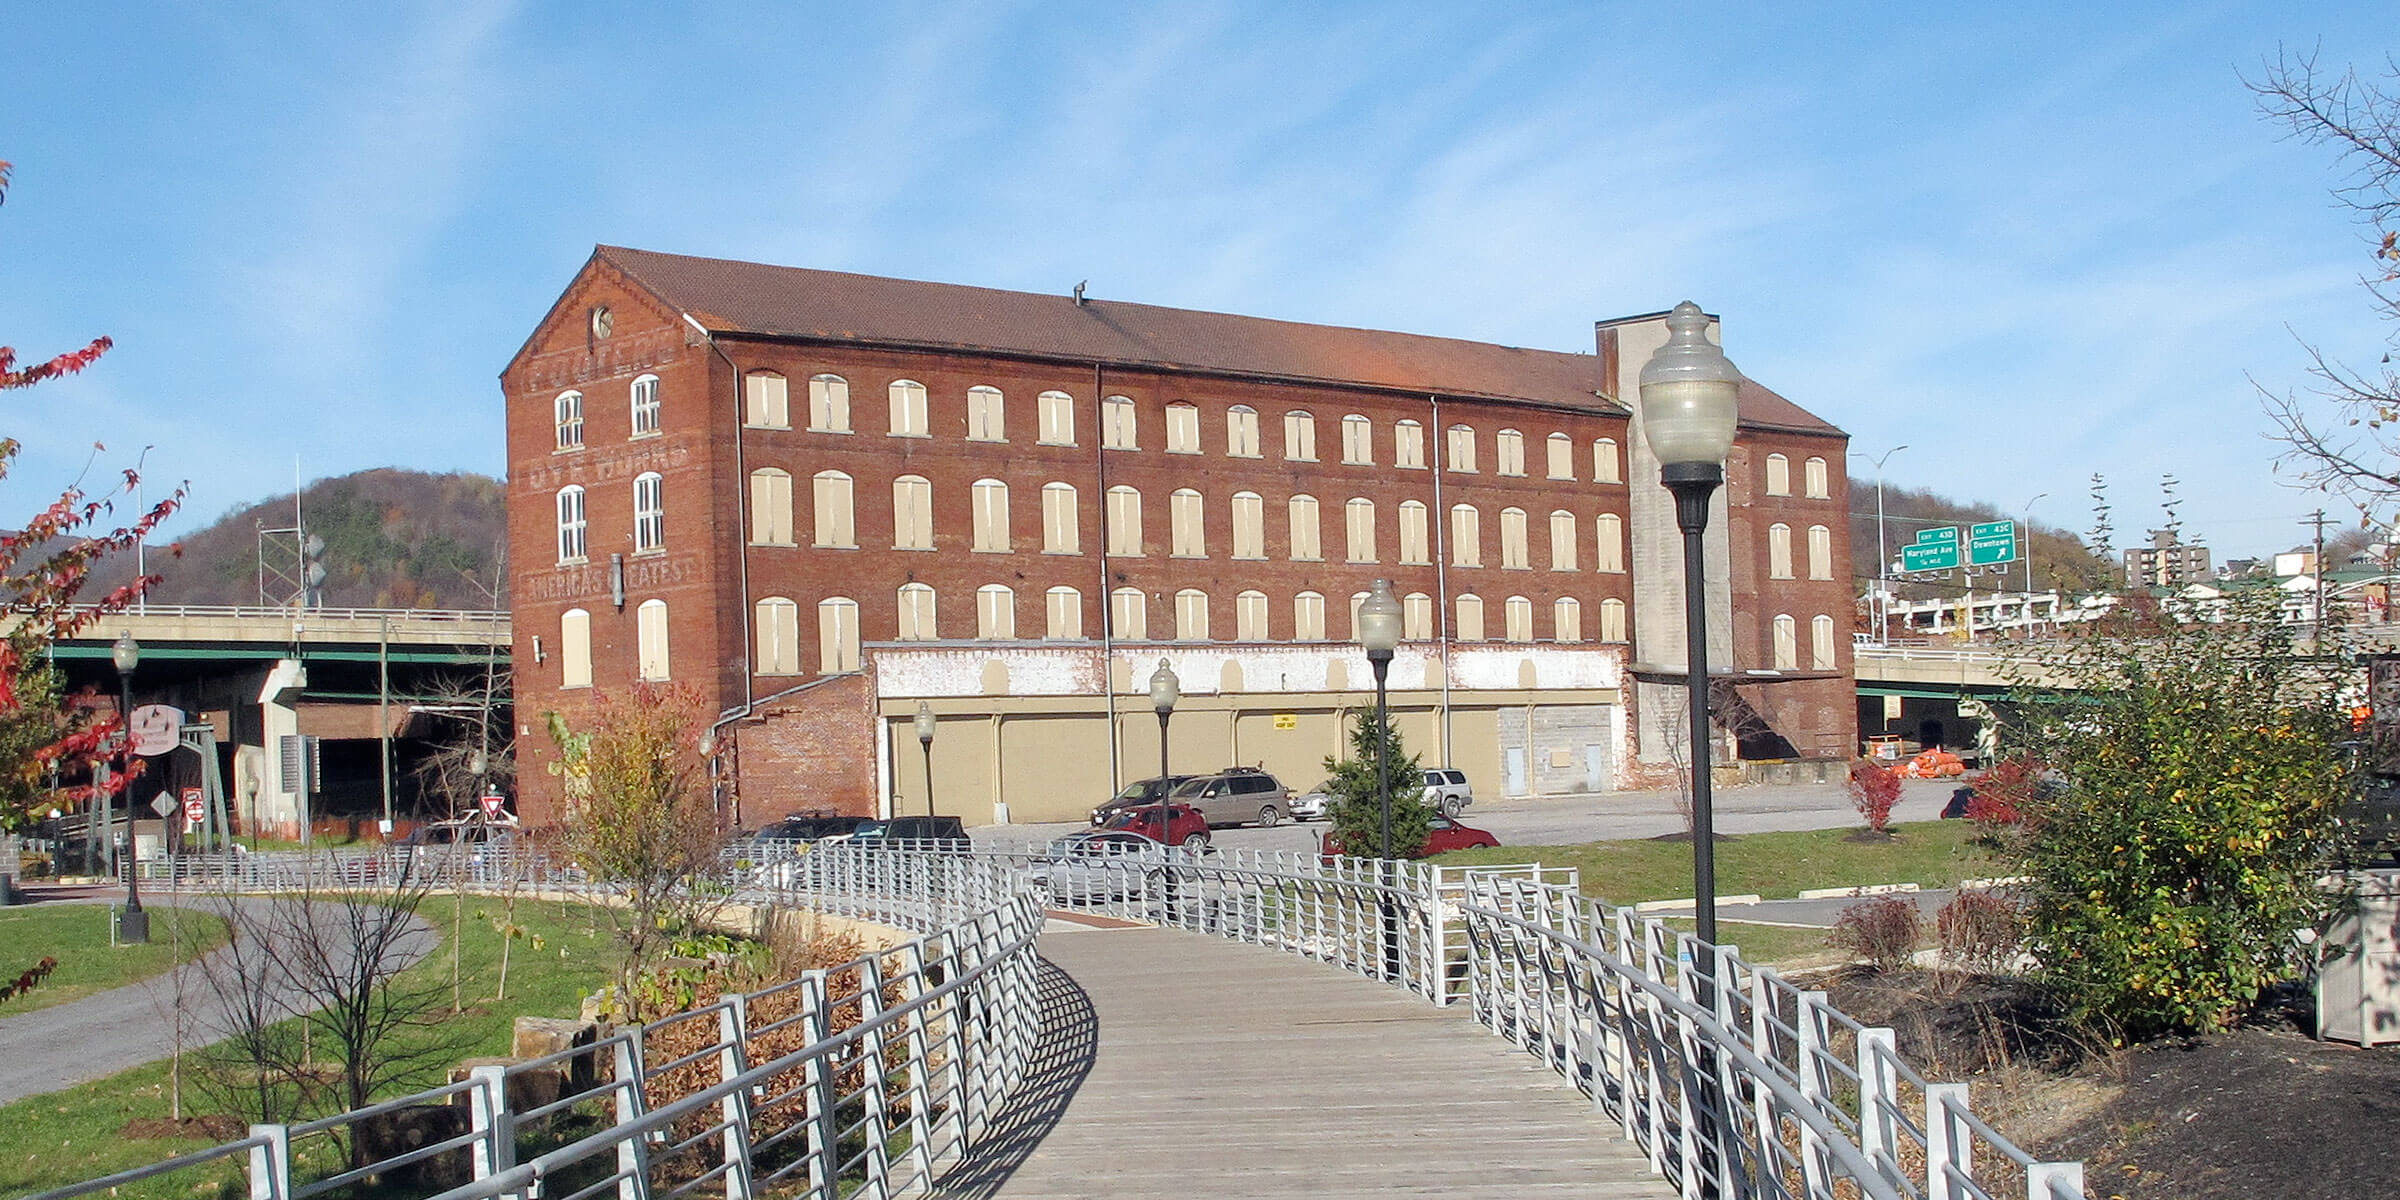 Outside the Footer's Dye Works Building where Dig Deep Brewing Co. is located in Cumberland, Maryland